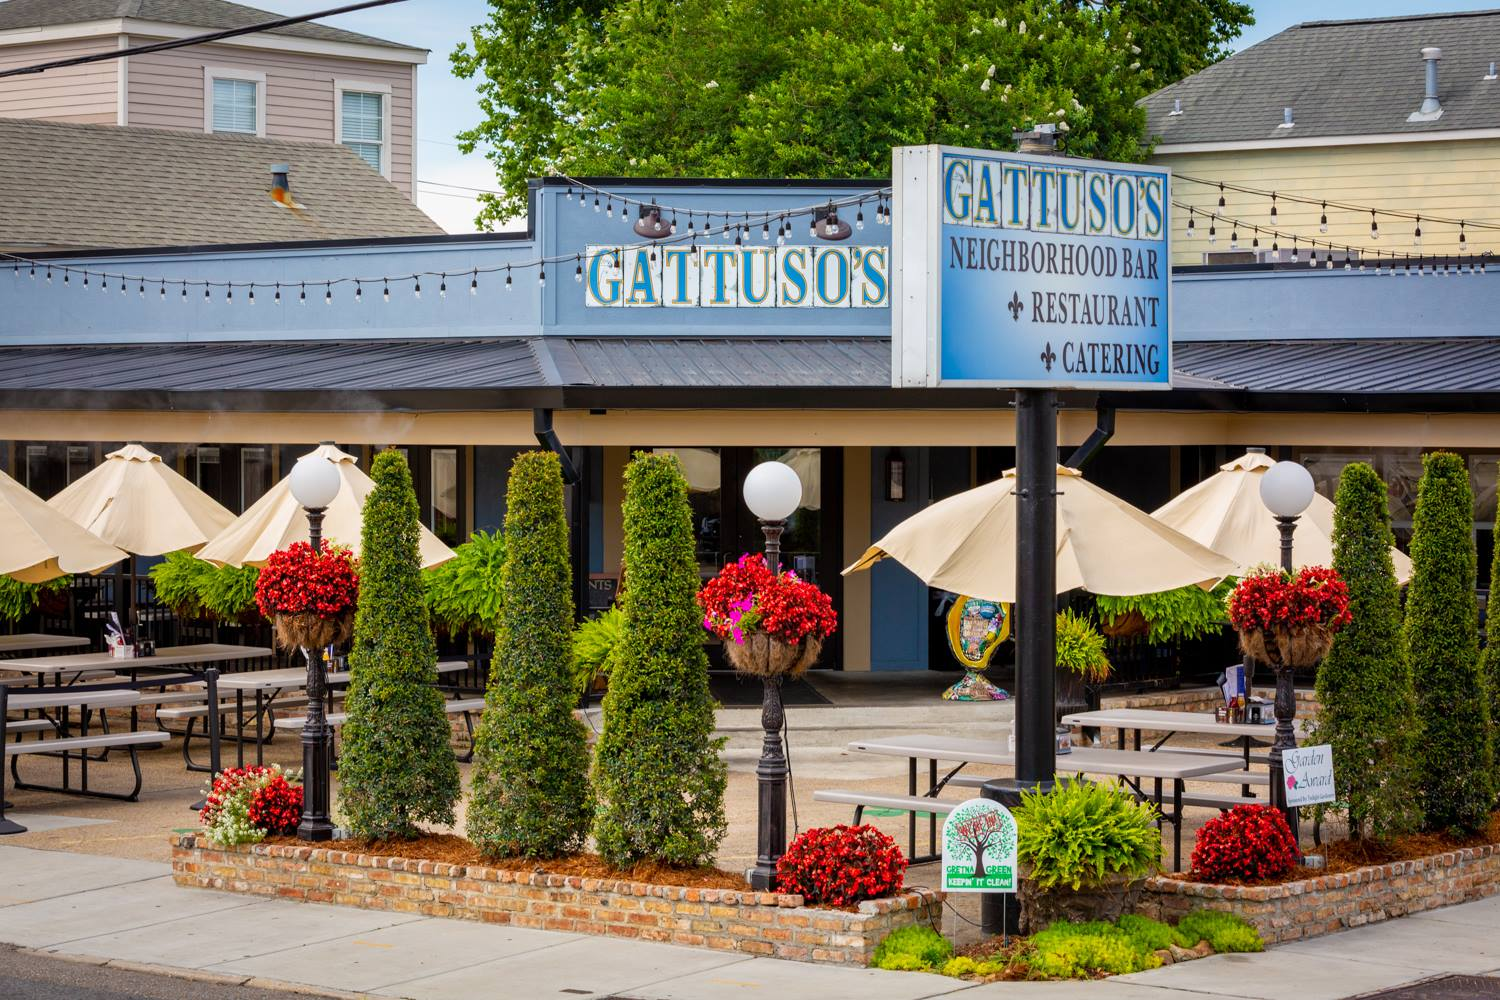 Outdoor shot of Gattusos restaurant with lots of plants and greenery and outdoor tables set up with umbrellas